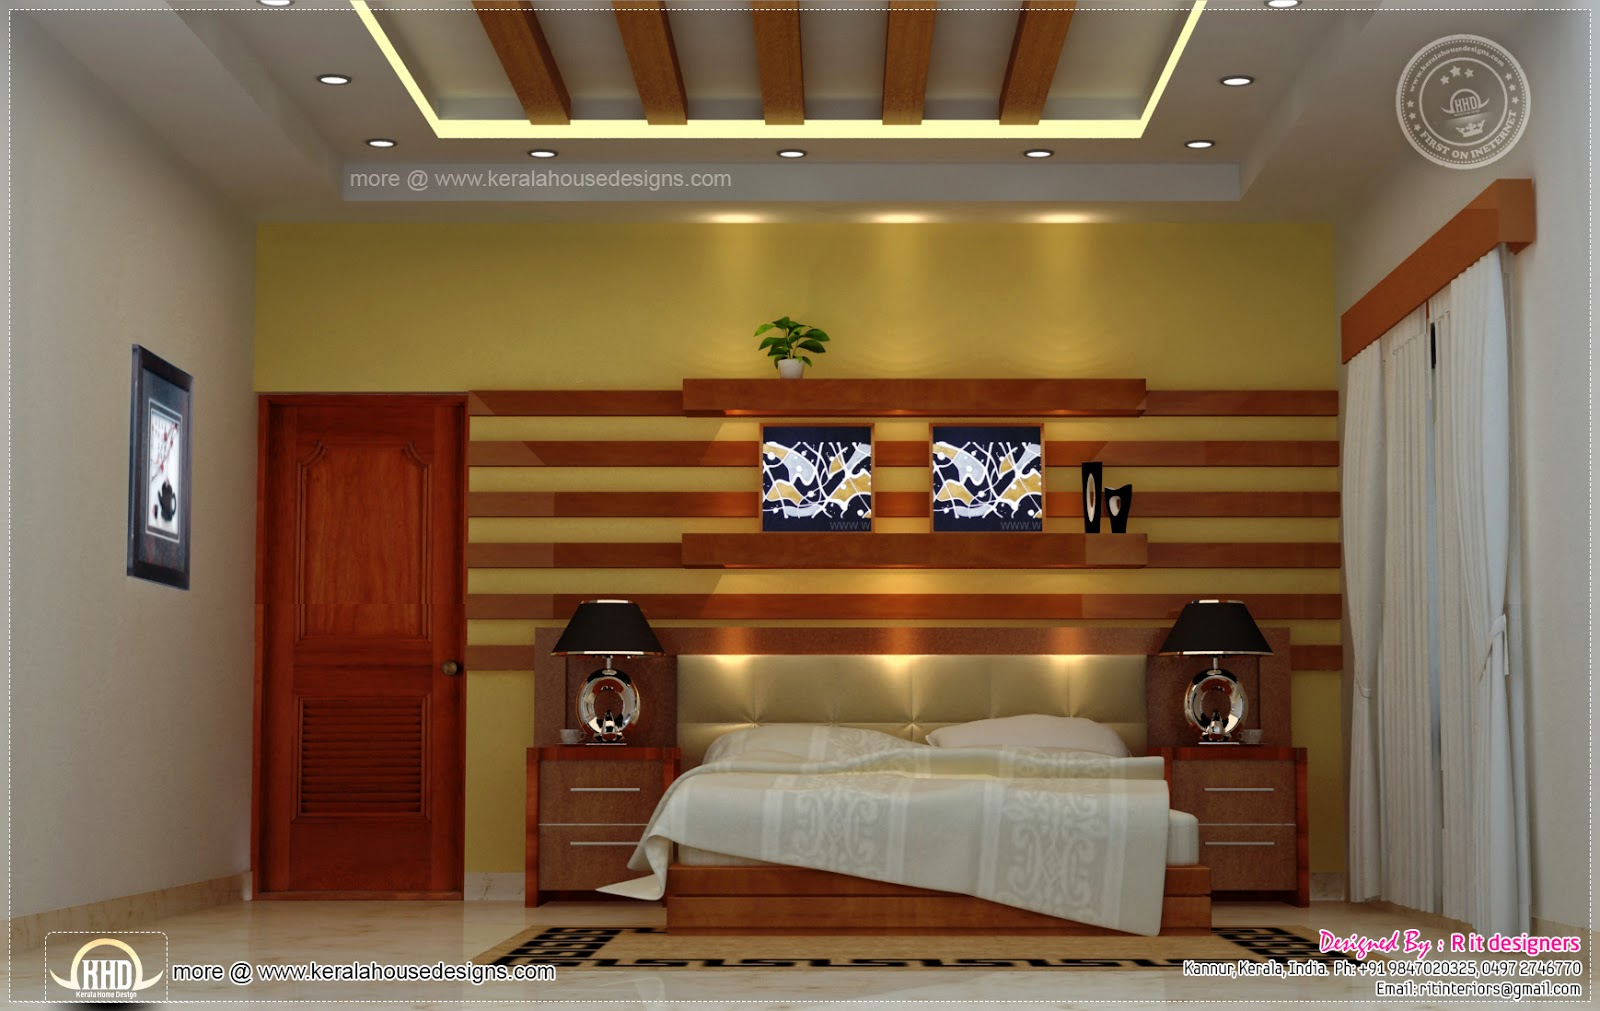 Home Designs Photos In Kerala